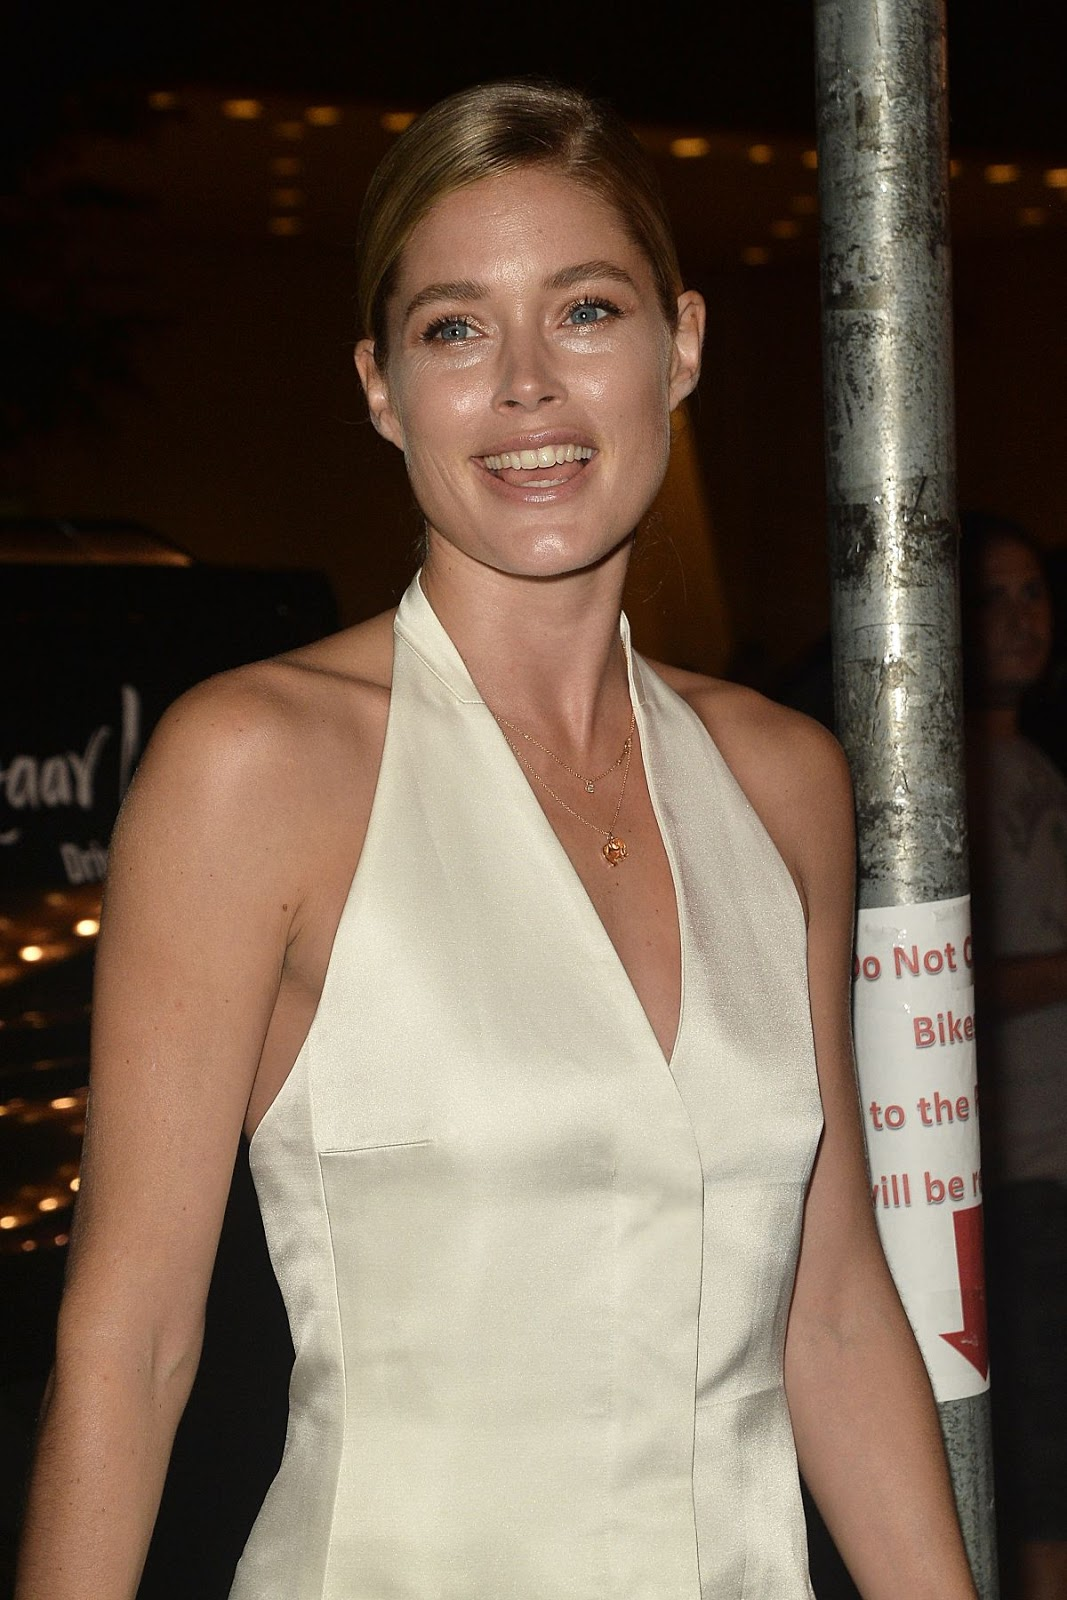 'Wonder Woman' actress Photos Doutzen Kroes At Harper's Bazaar Celebrates Icons By Carine Roitfeld, NY City